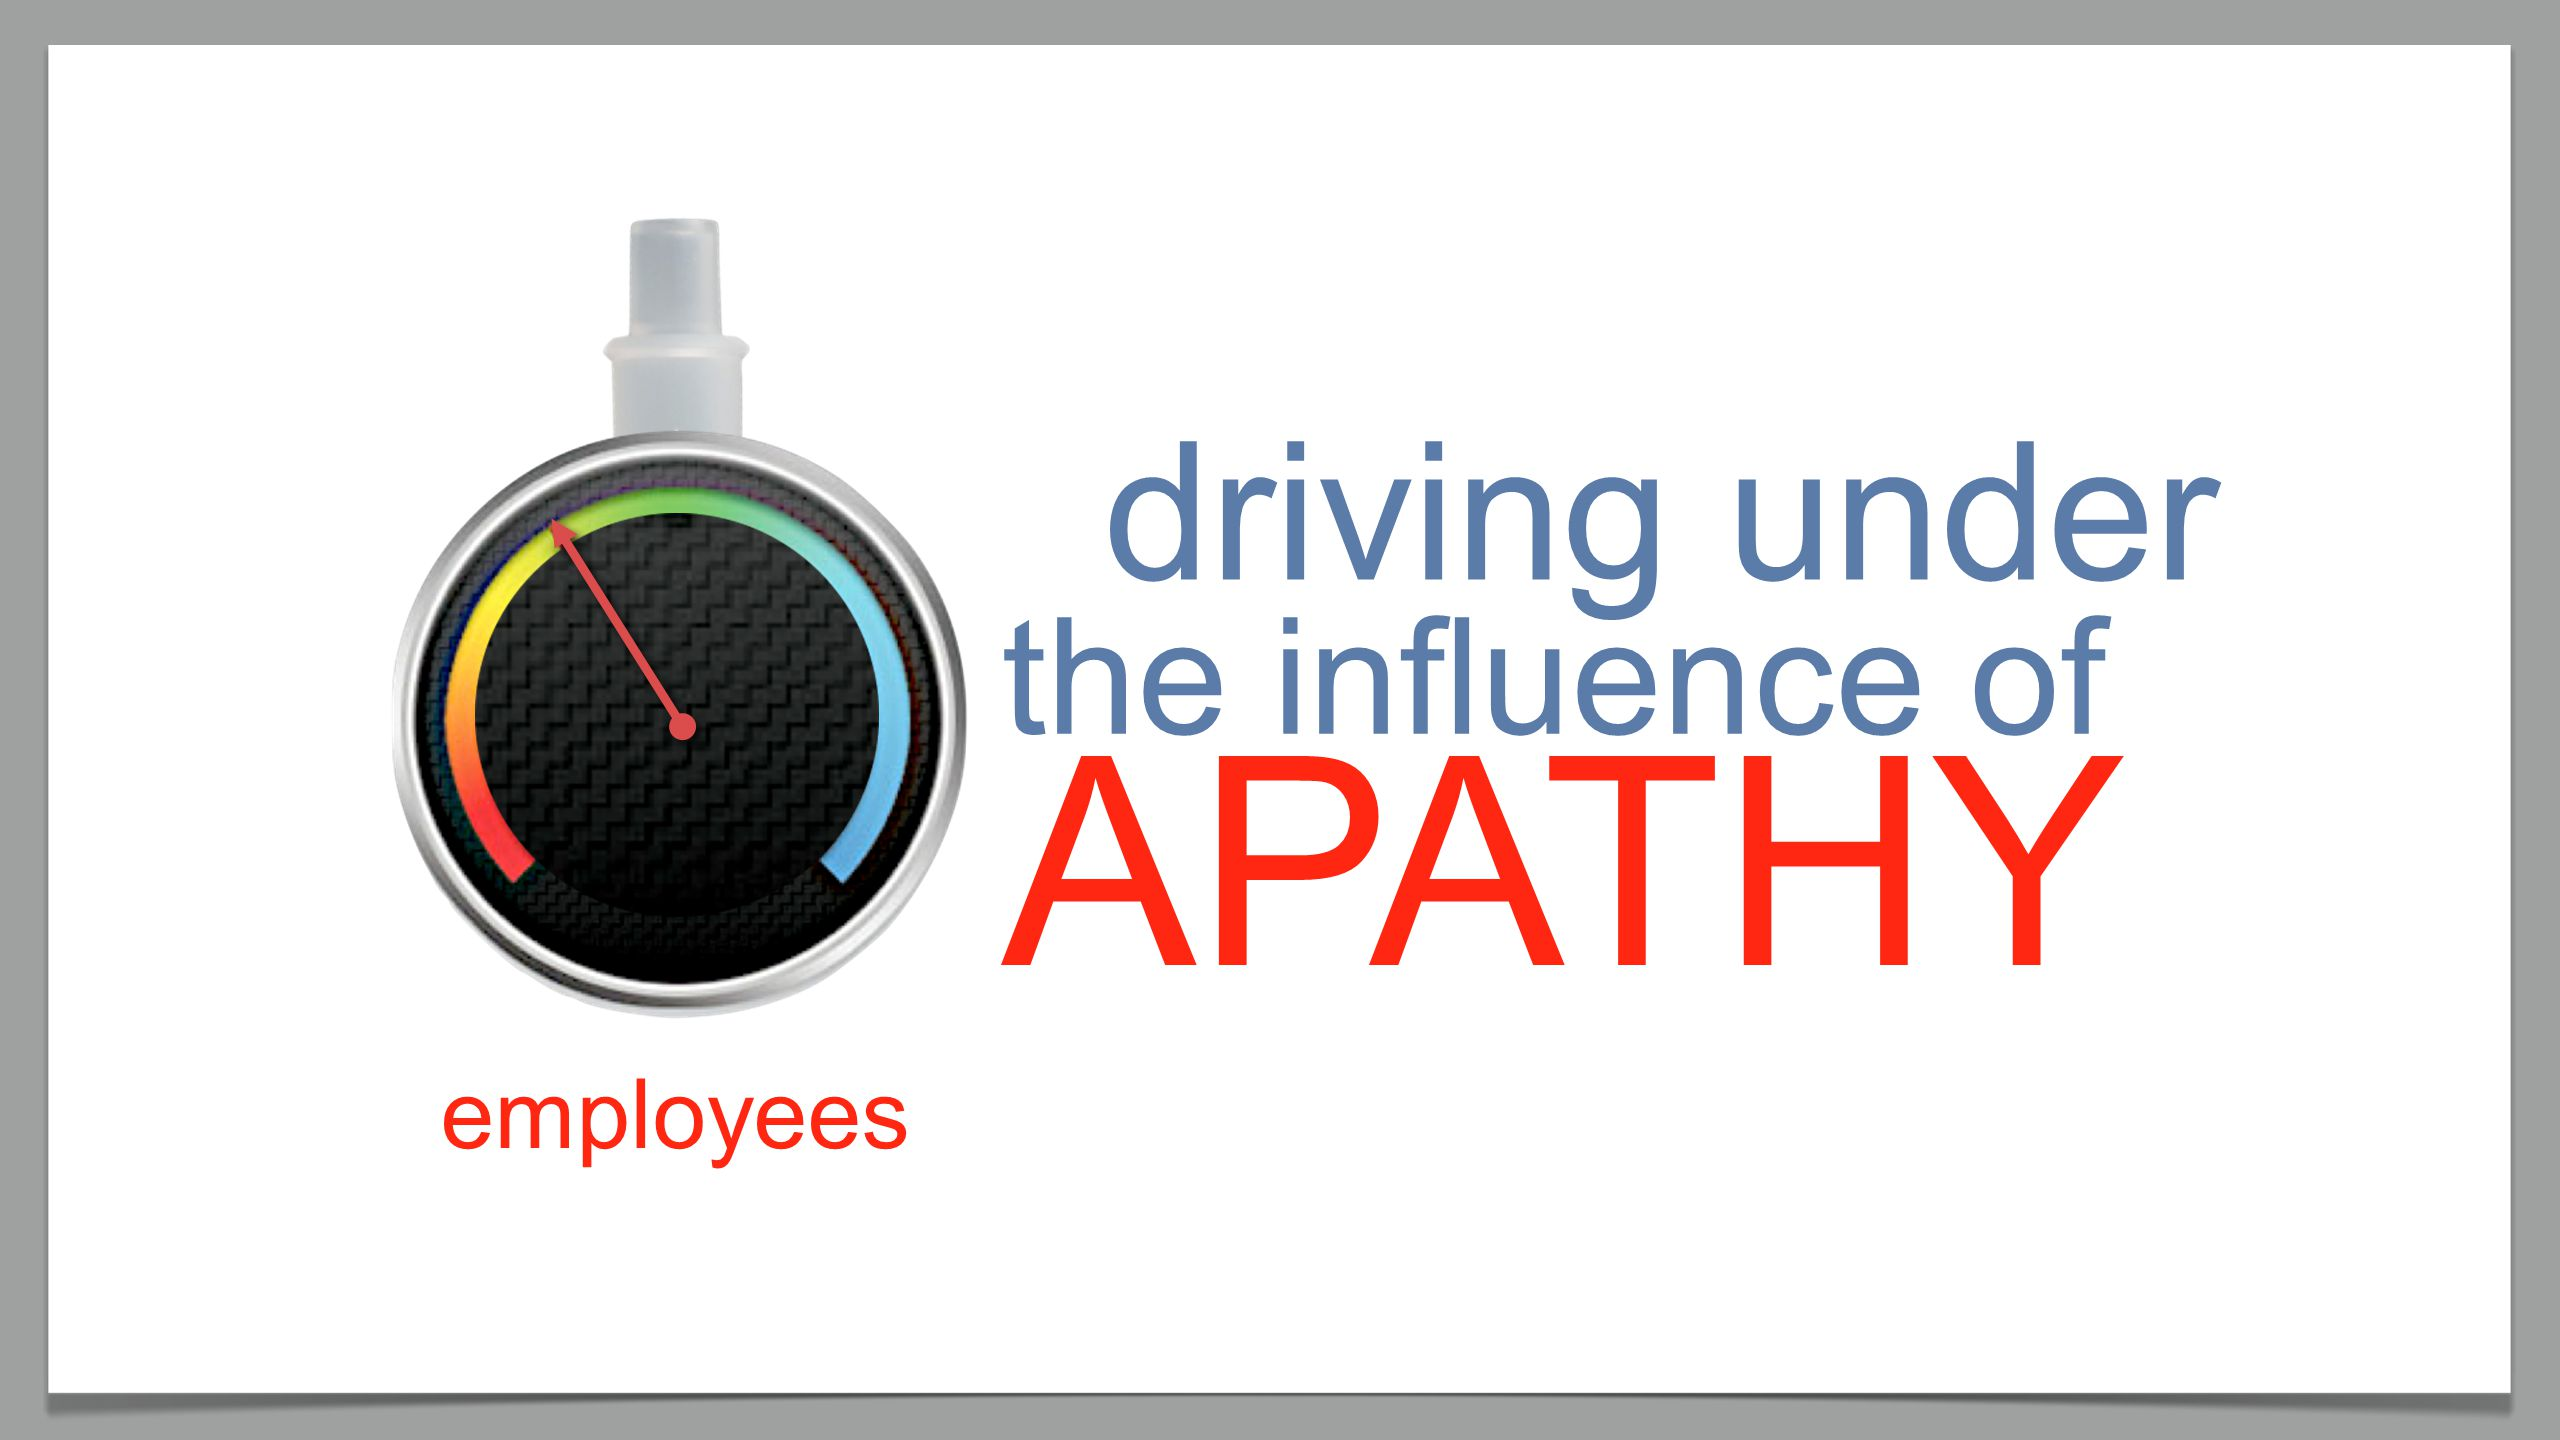 driving under APATHY the influence of employees